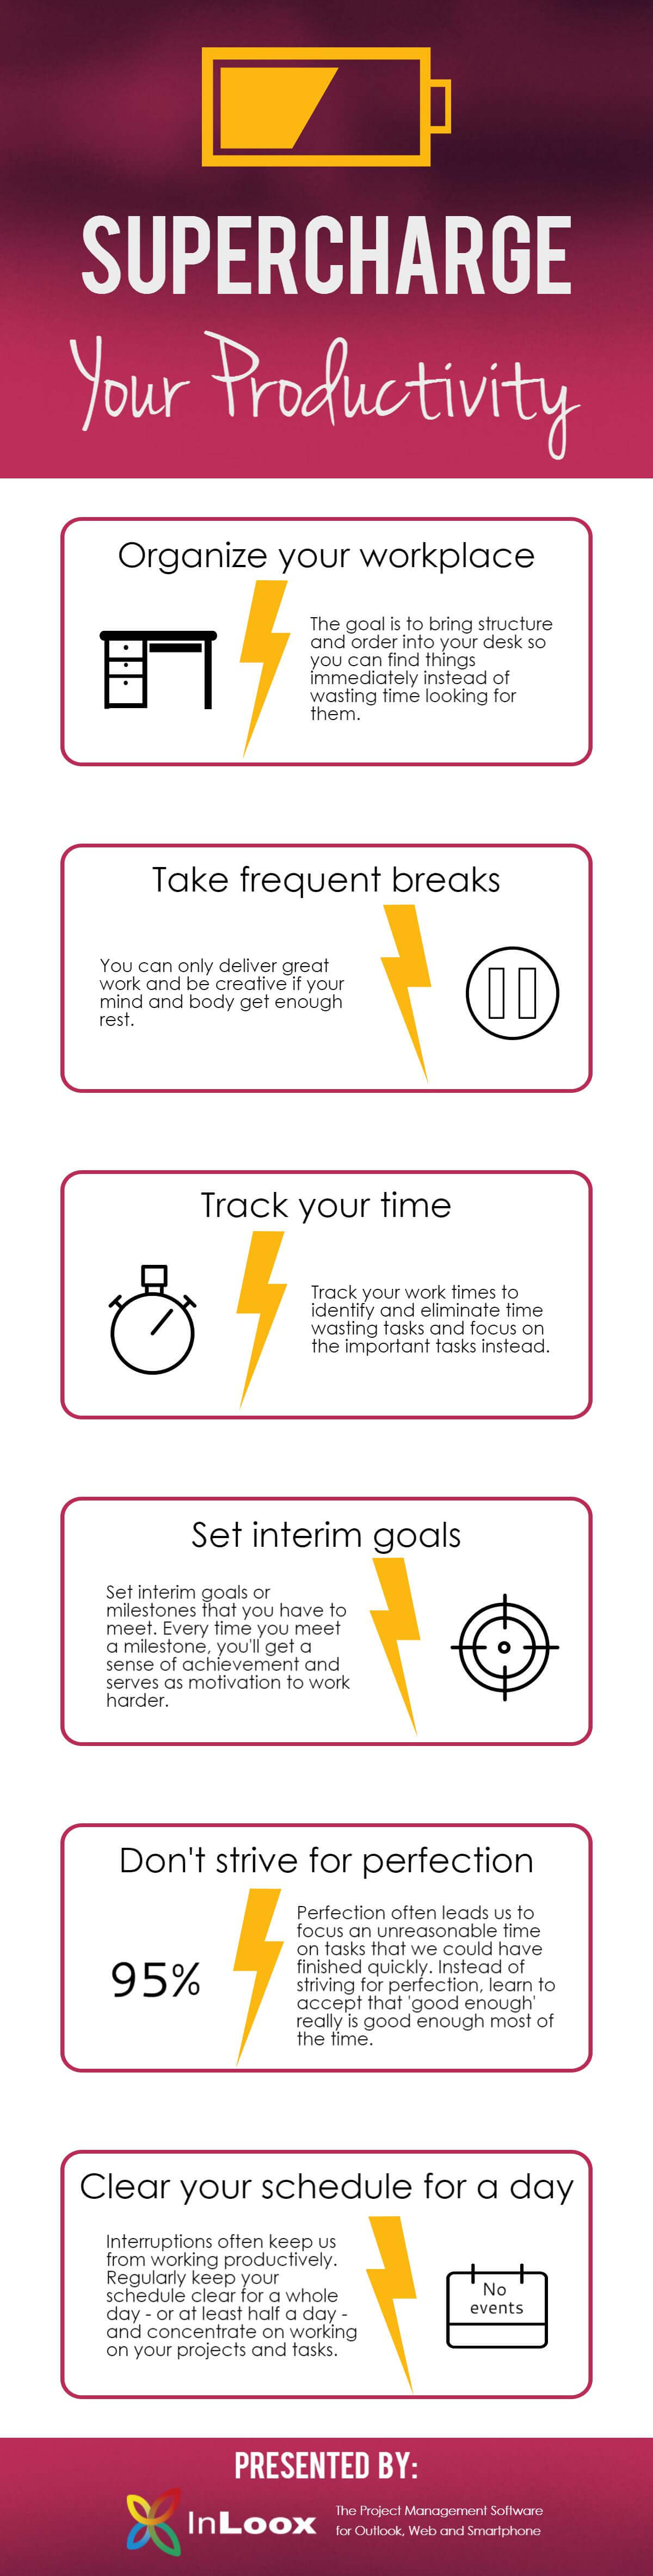 INFOGRAPHIC Supercharge Your Productivity: Kick Off the New Year with a Productivity Boost